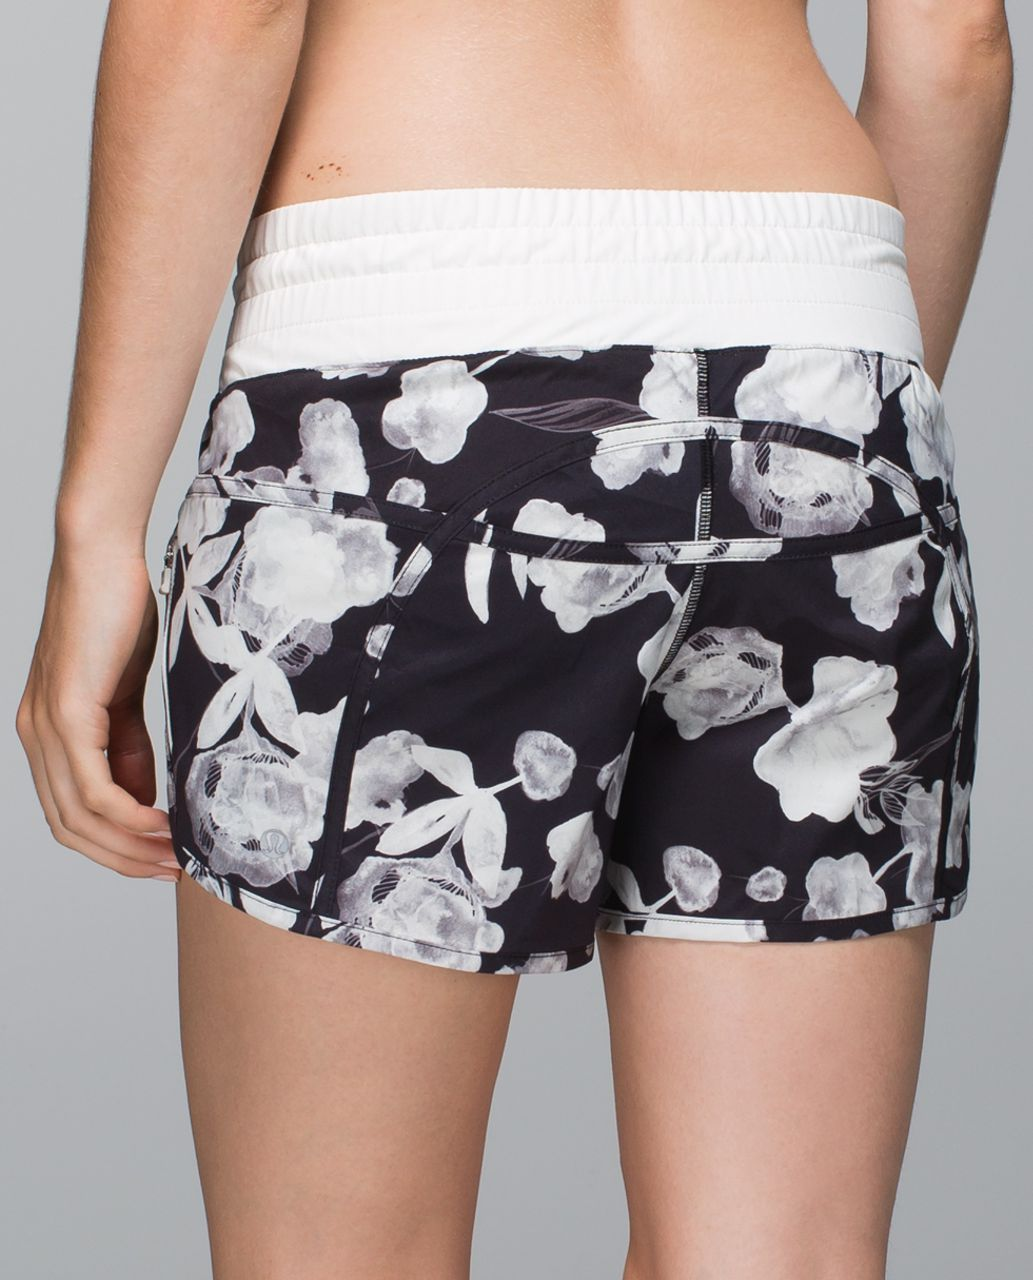 Lululemon Tracker Short II *2-way Stretch - Inky Floral Black Ghost / Ghost